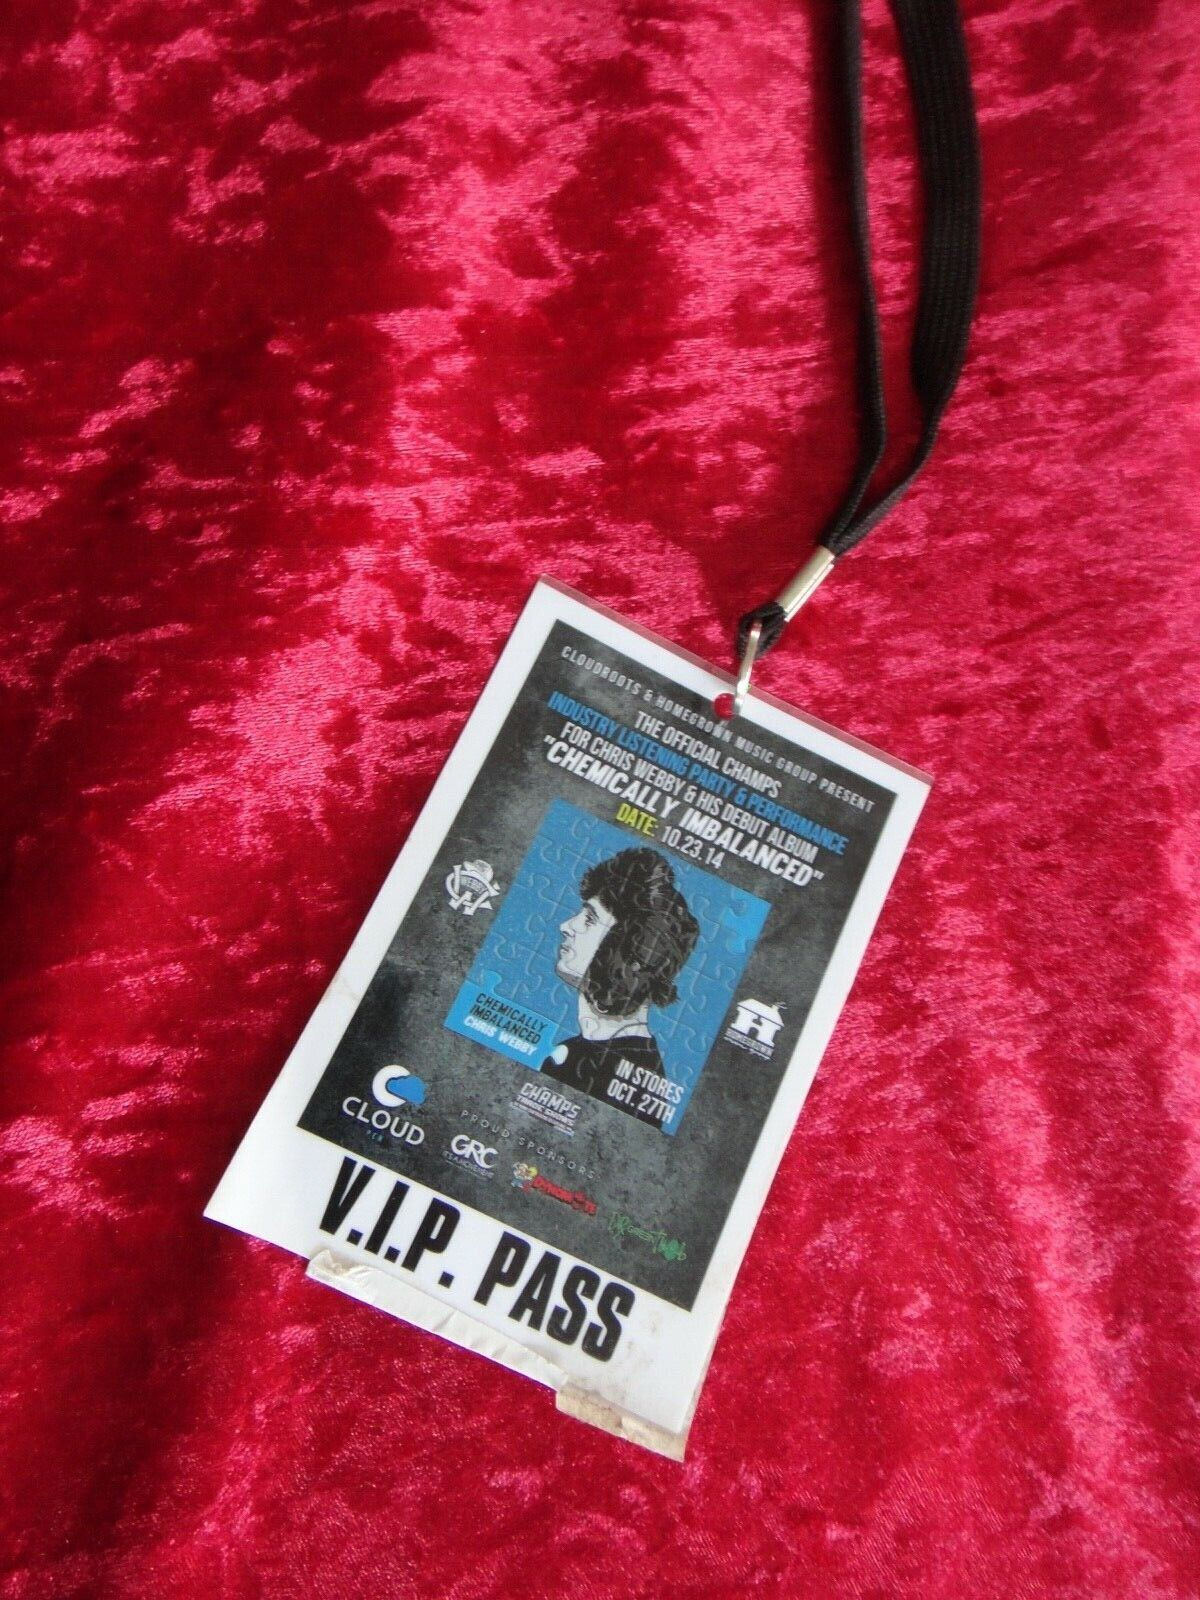 V.I.P. PASS CHAMPS CHRIS WEBBY CHEMICALLY IMBALANCED PARTY 10-23-2014 - $20.14